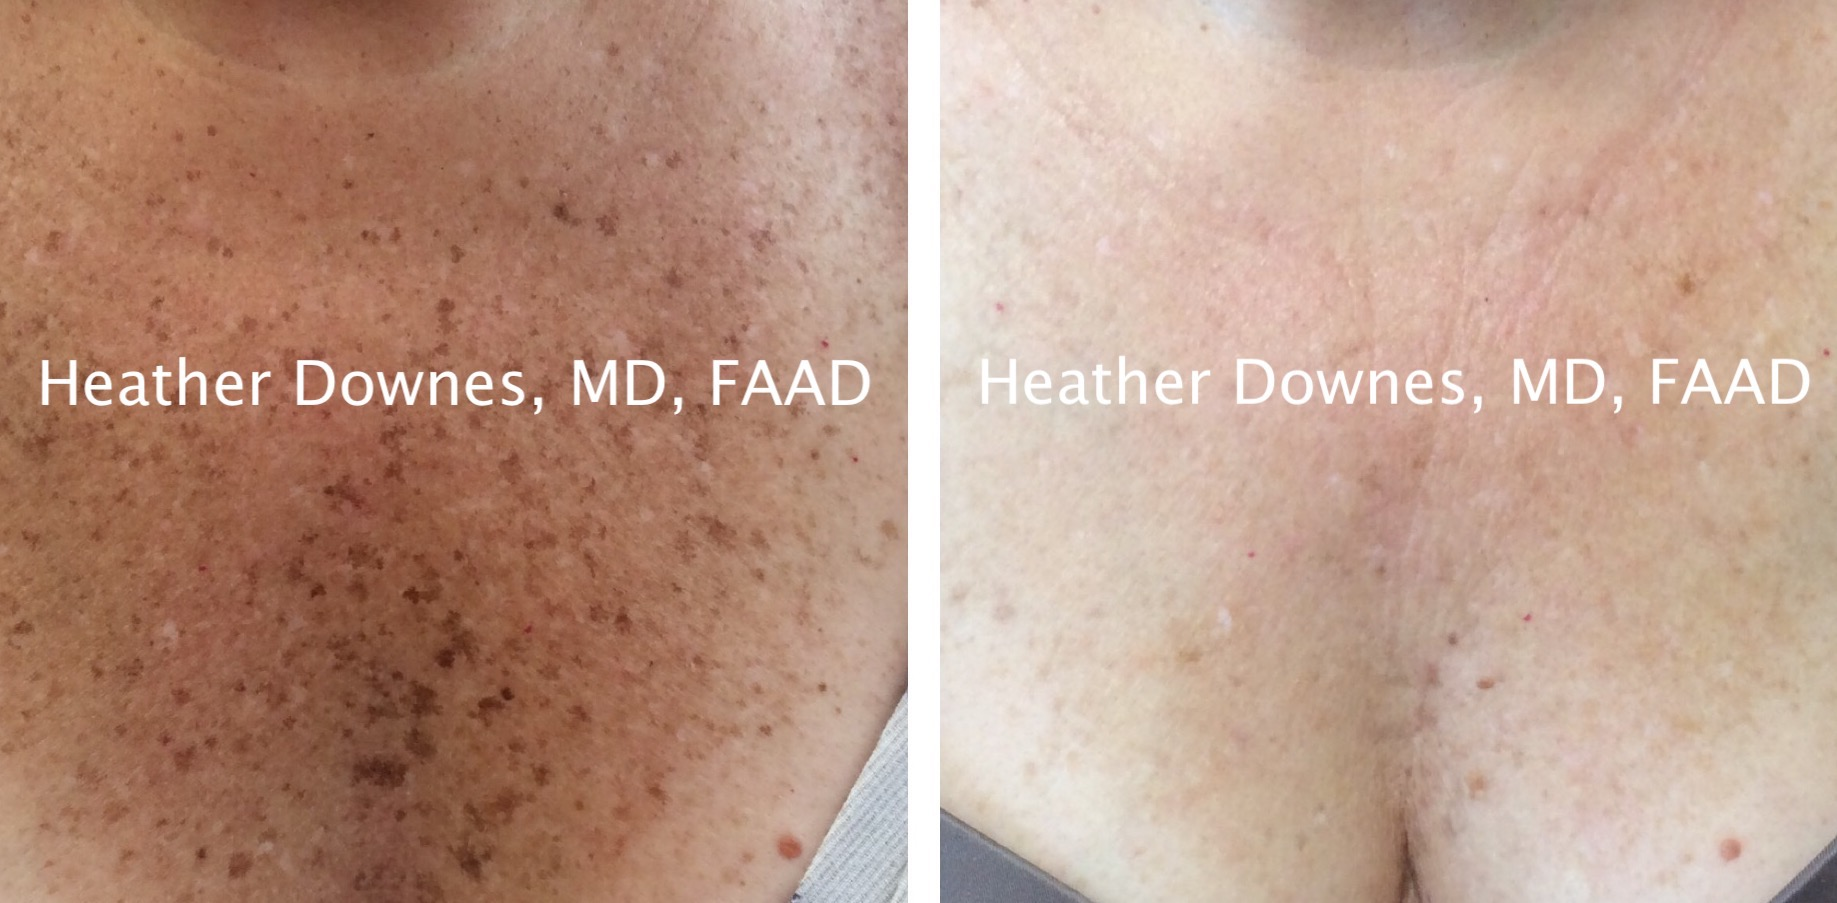 Left: Before treatment  Right: After two IPL treatments